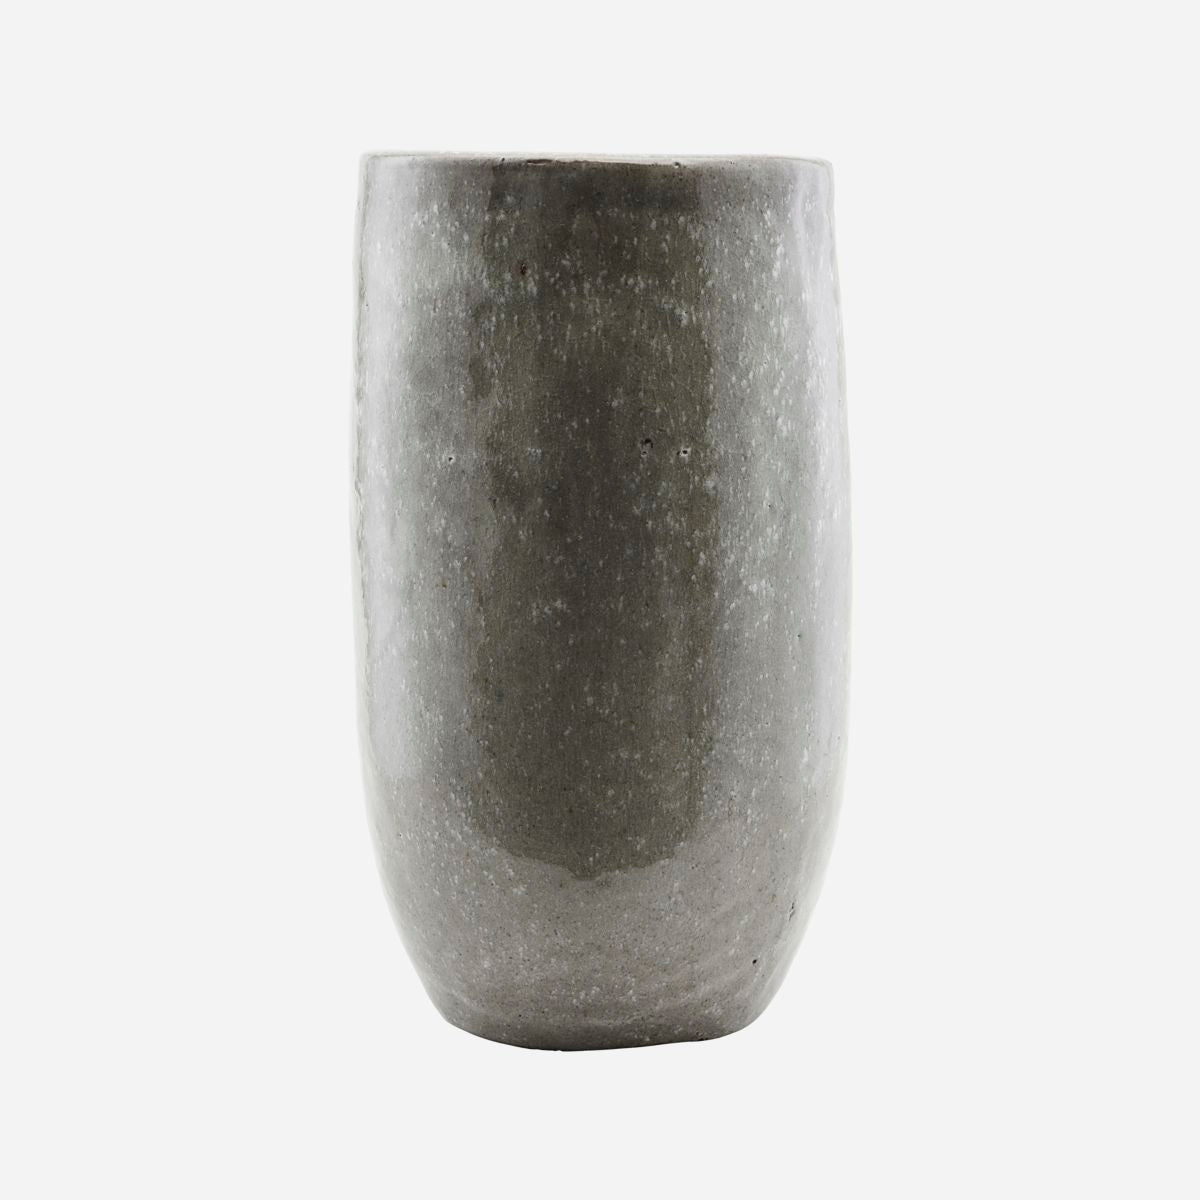 Image of   Planter, Earth, Green/Grey, Outdoor use, Finish/Colour may vary